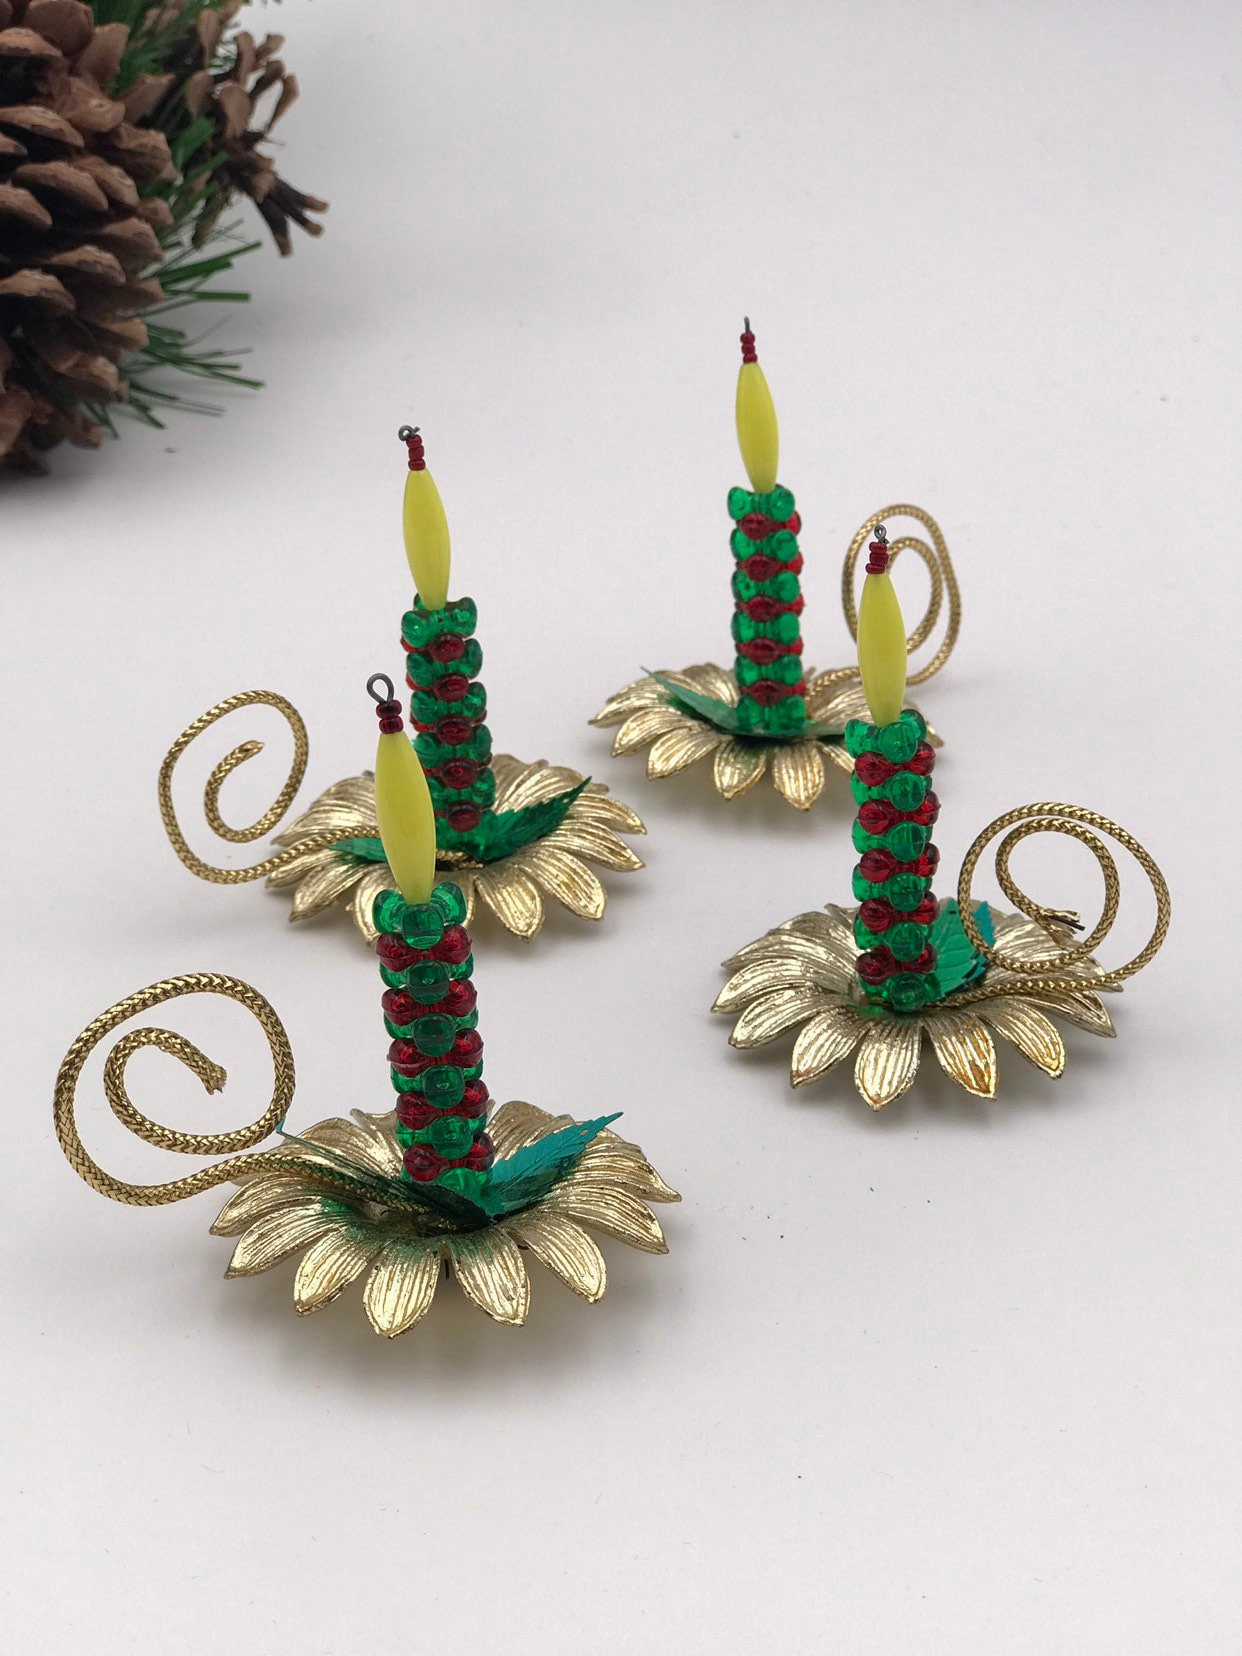 Vintage Beaded Christmas Candle Holder Ornaments, 1970s